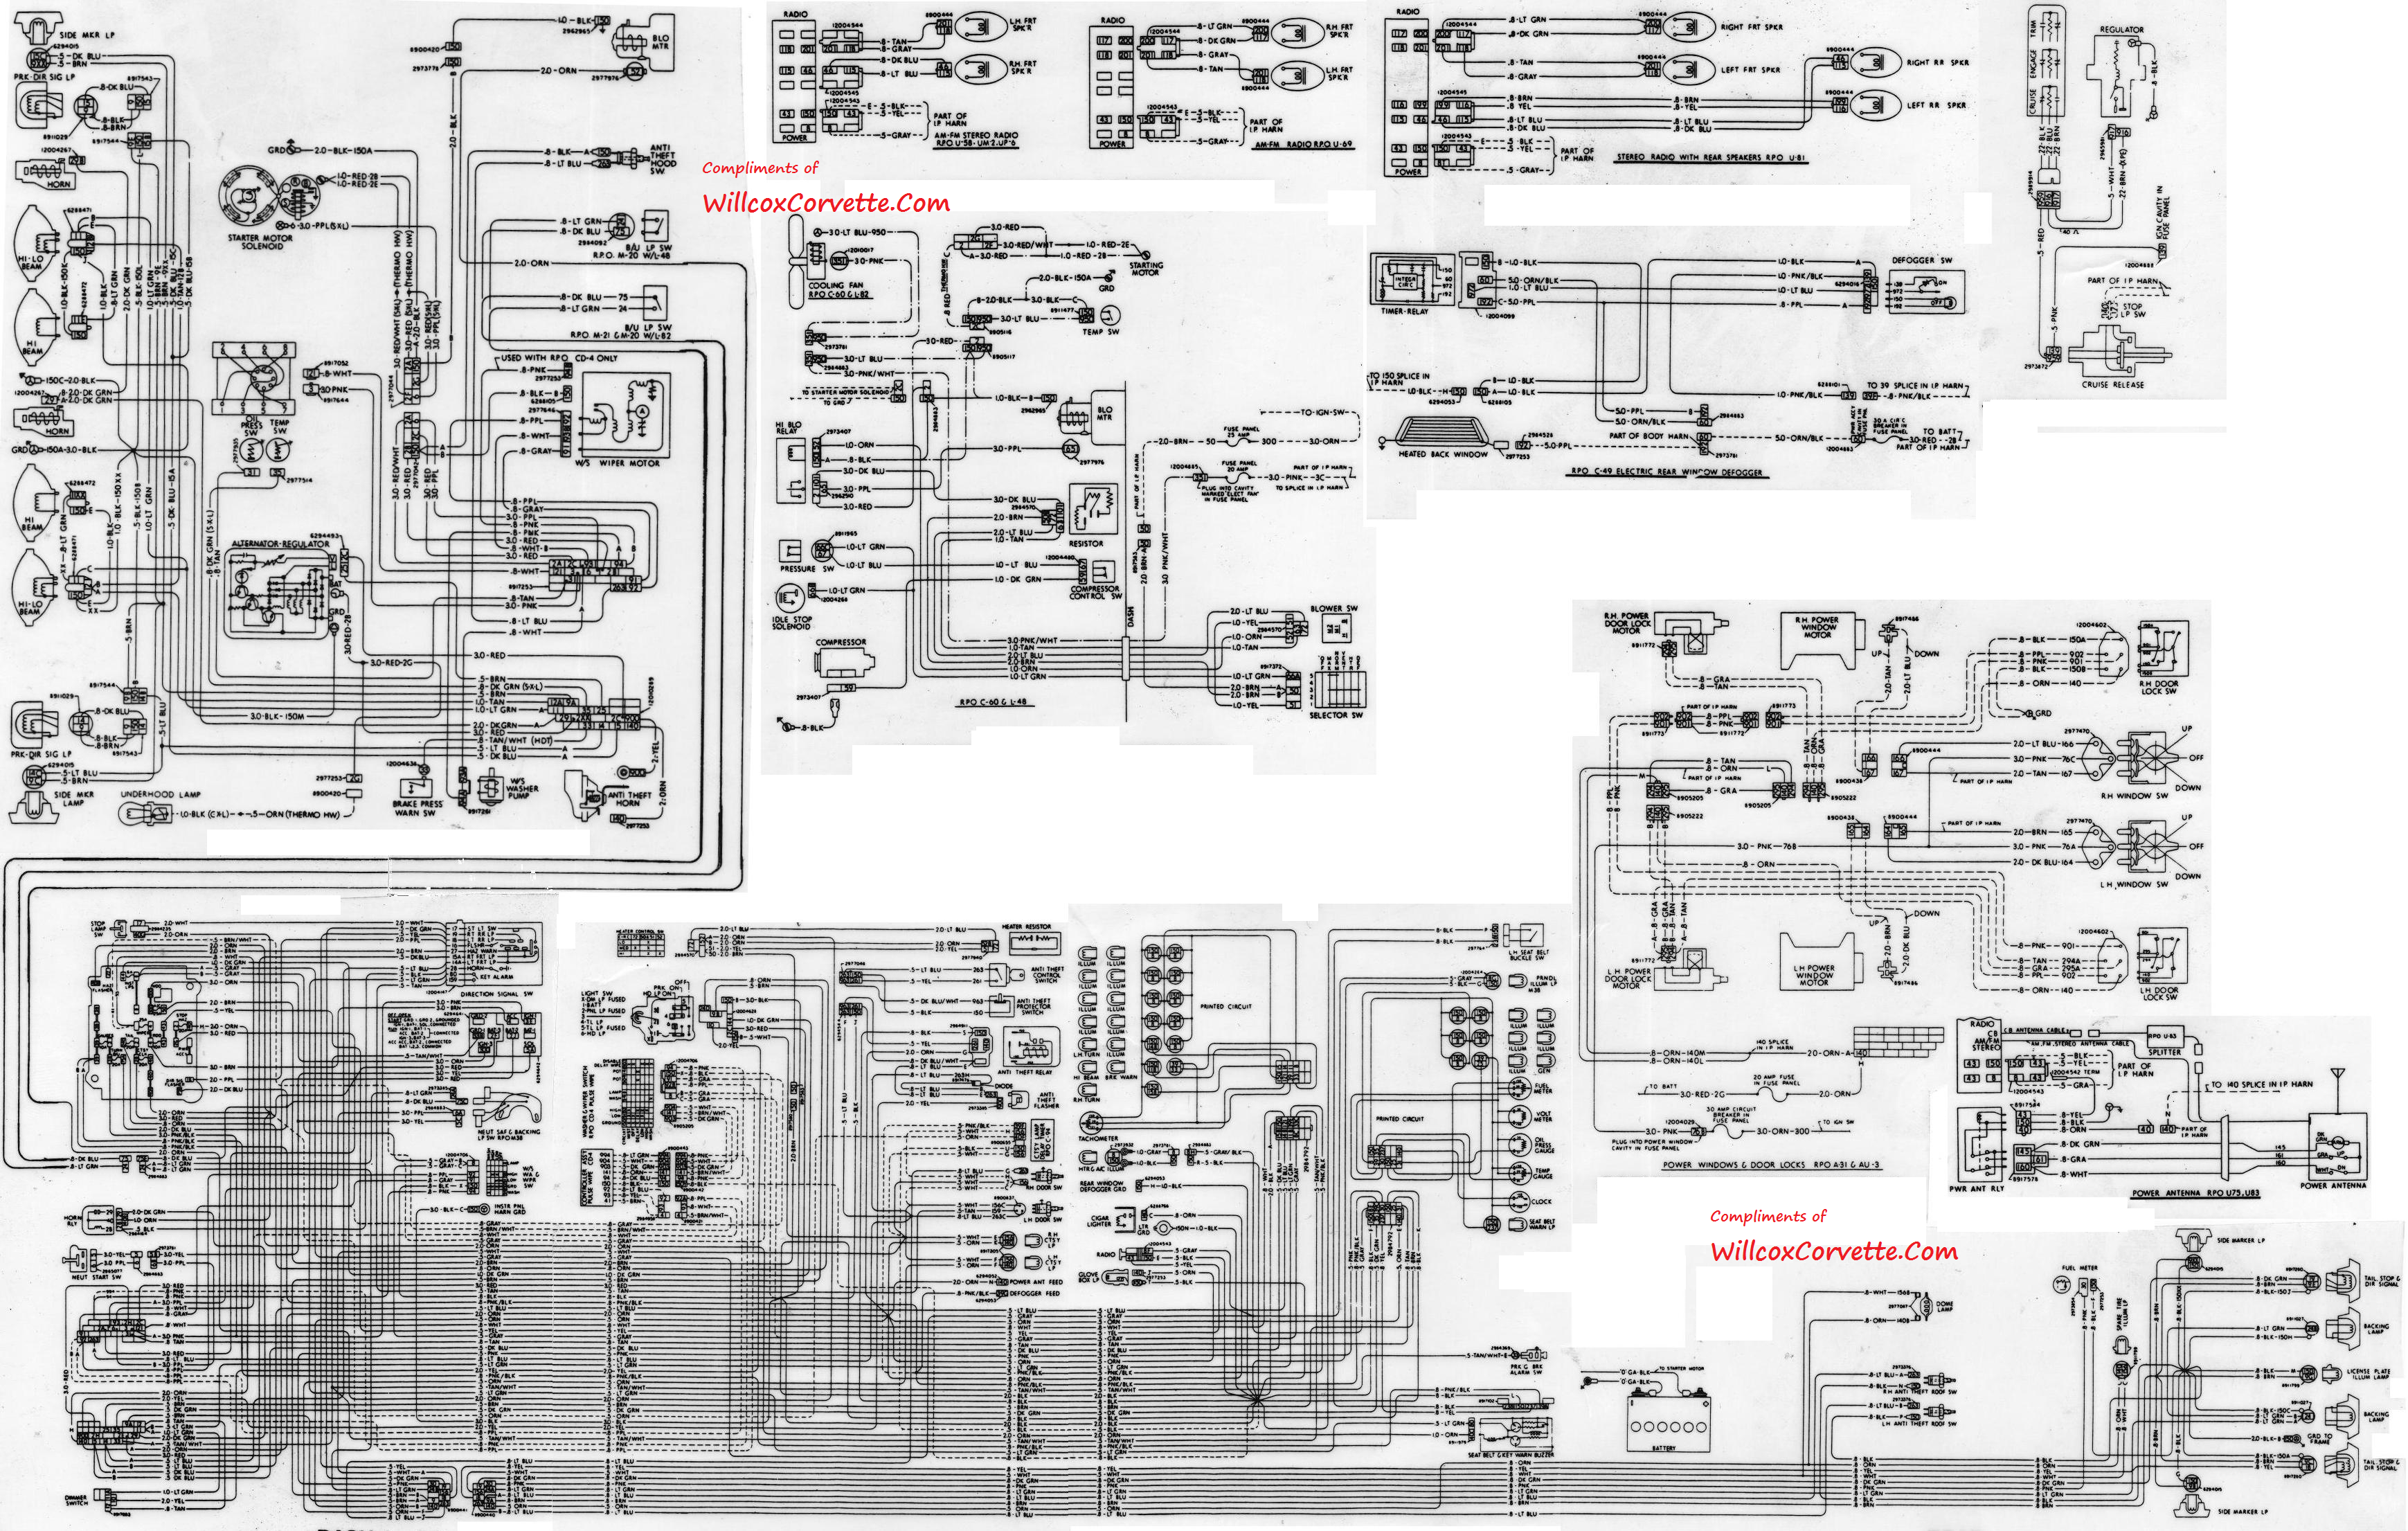 79 COMBINED TRACER SCHEMATIC 1979 wiring diagram corvetteforum chevrolet corvette forum 1980 corvette wiring diagram at readyjetset.co